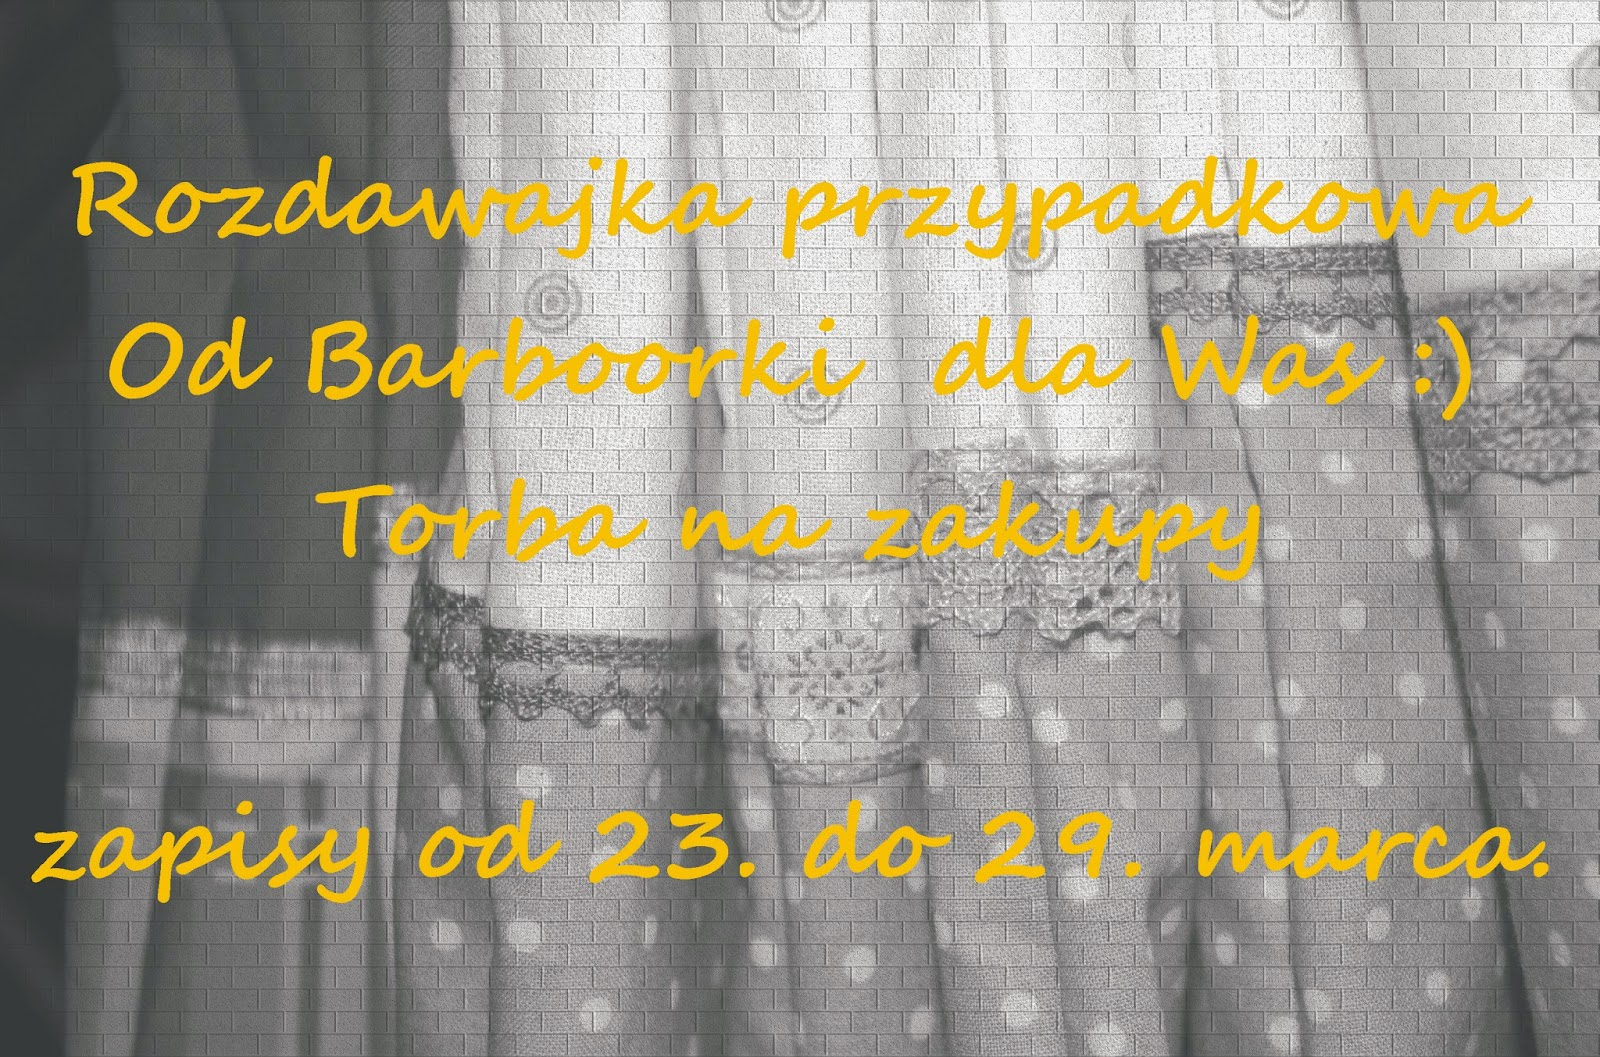 https://www.facebook.com/pages/Od-Barboorki-Sw%C4%99dz%C4%85-mnie-palce/138422929680315